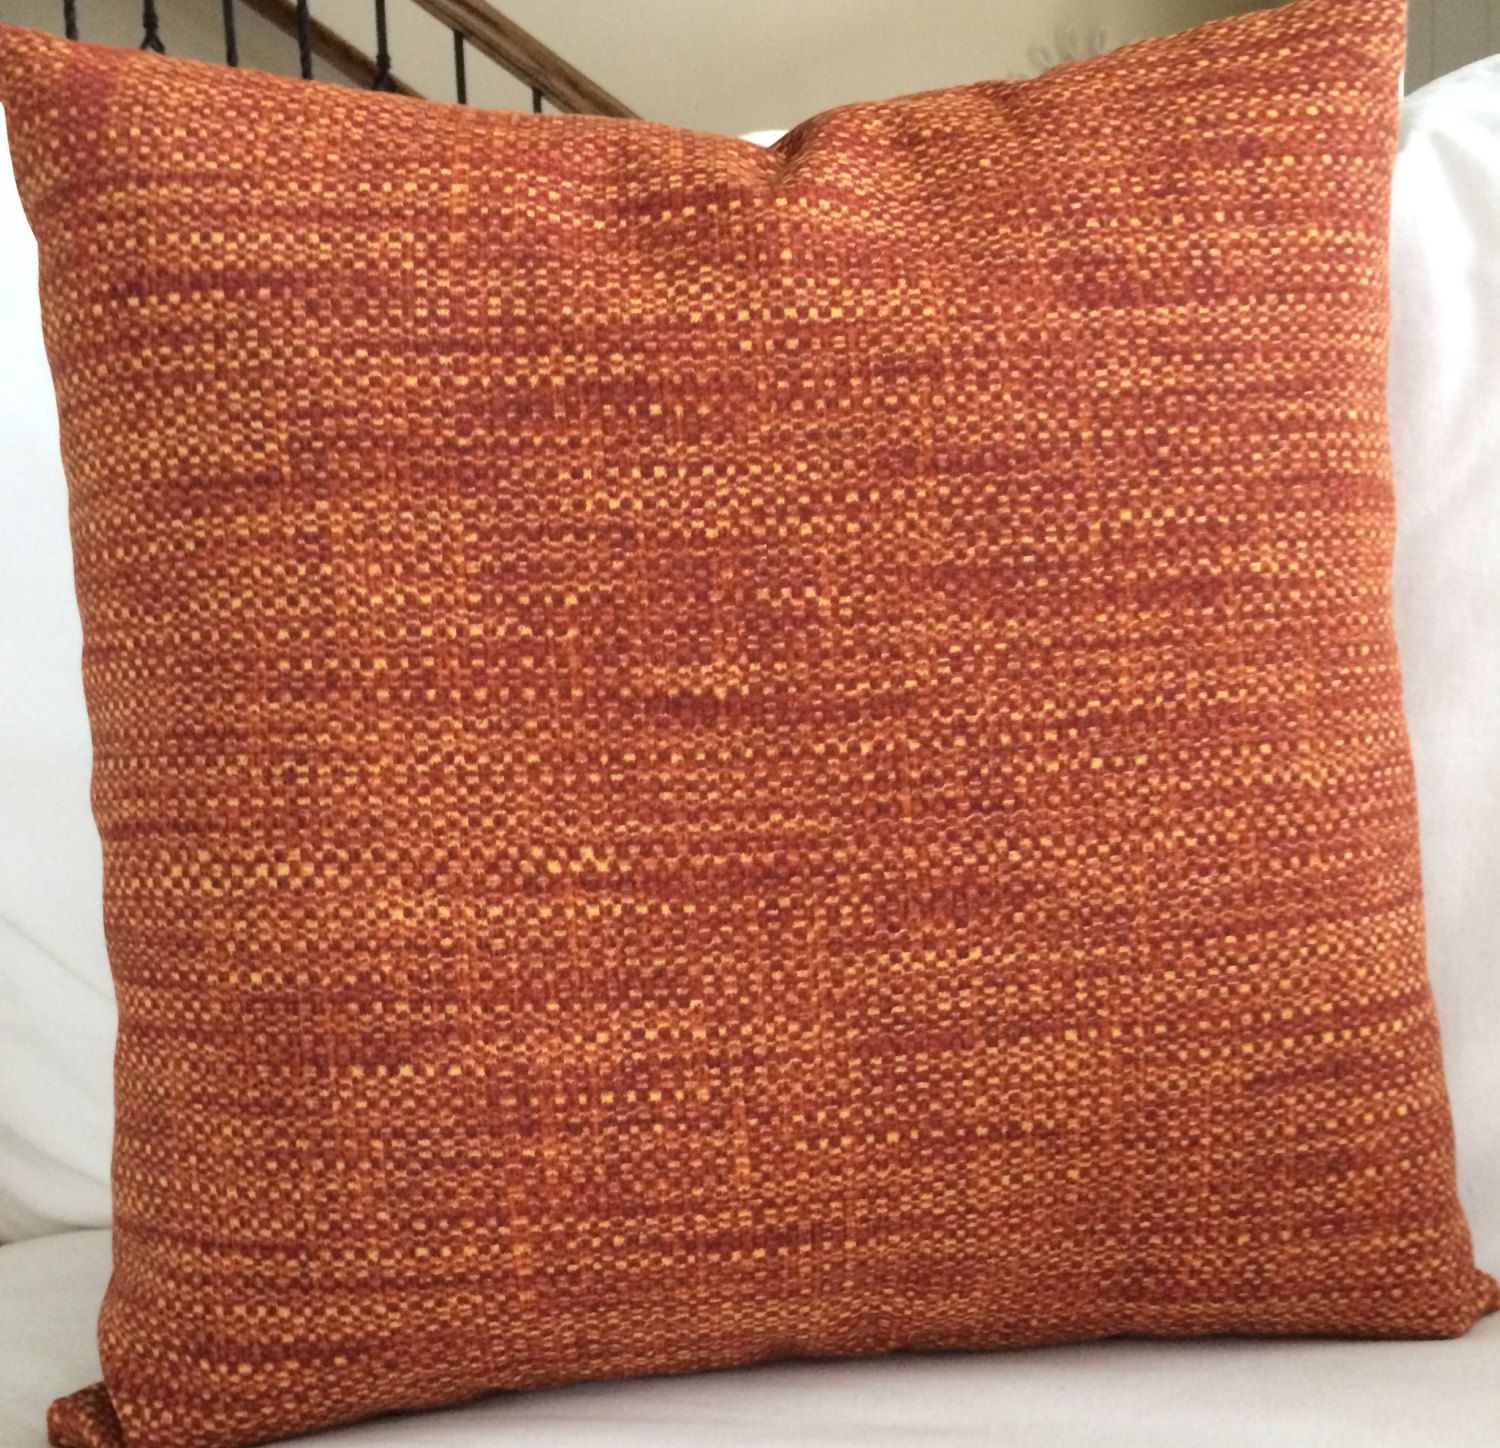 white couch masculine black for pillows room accent throw and living orange bolster decor pillow